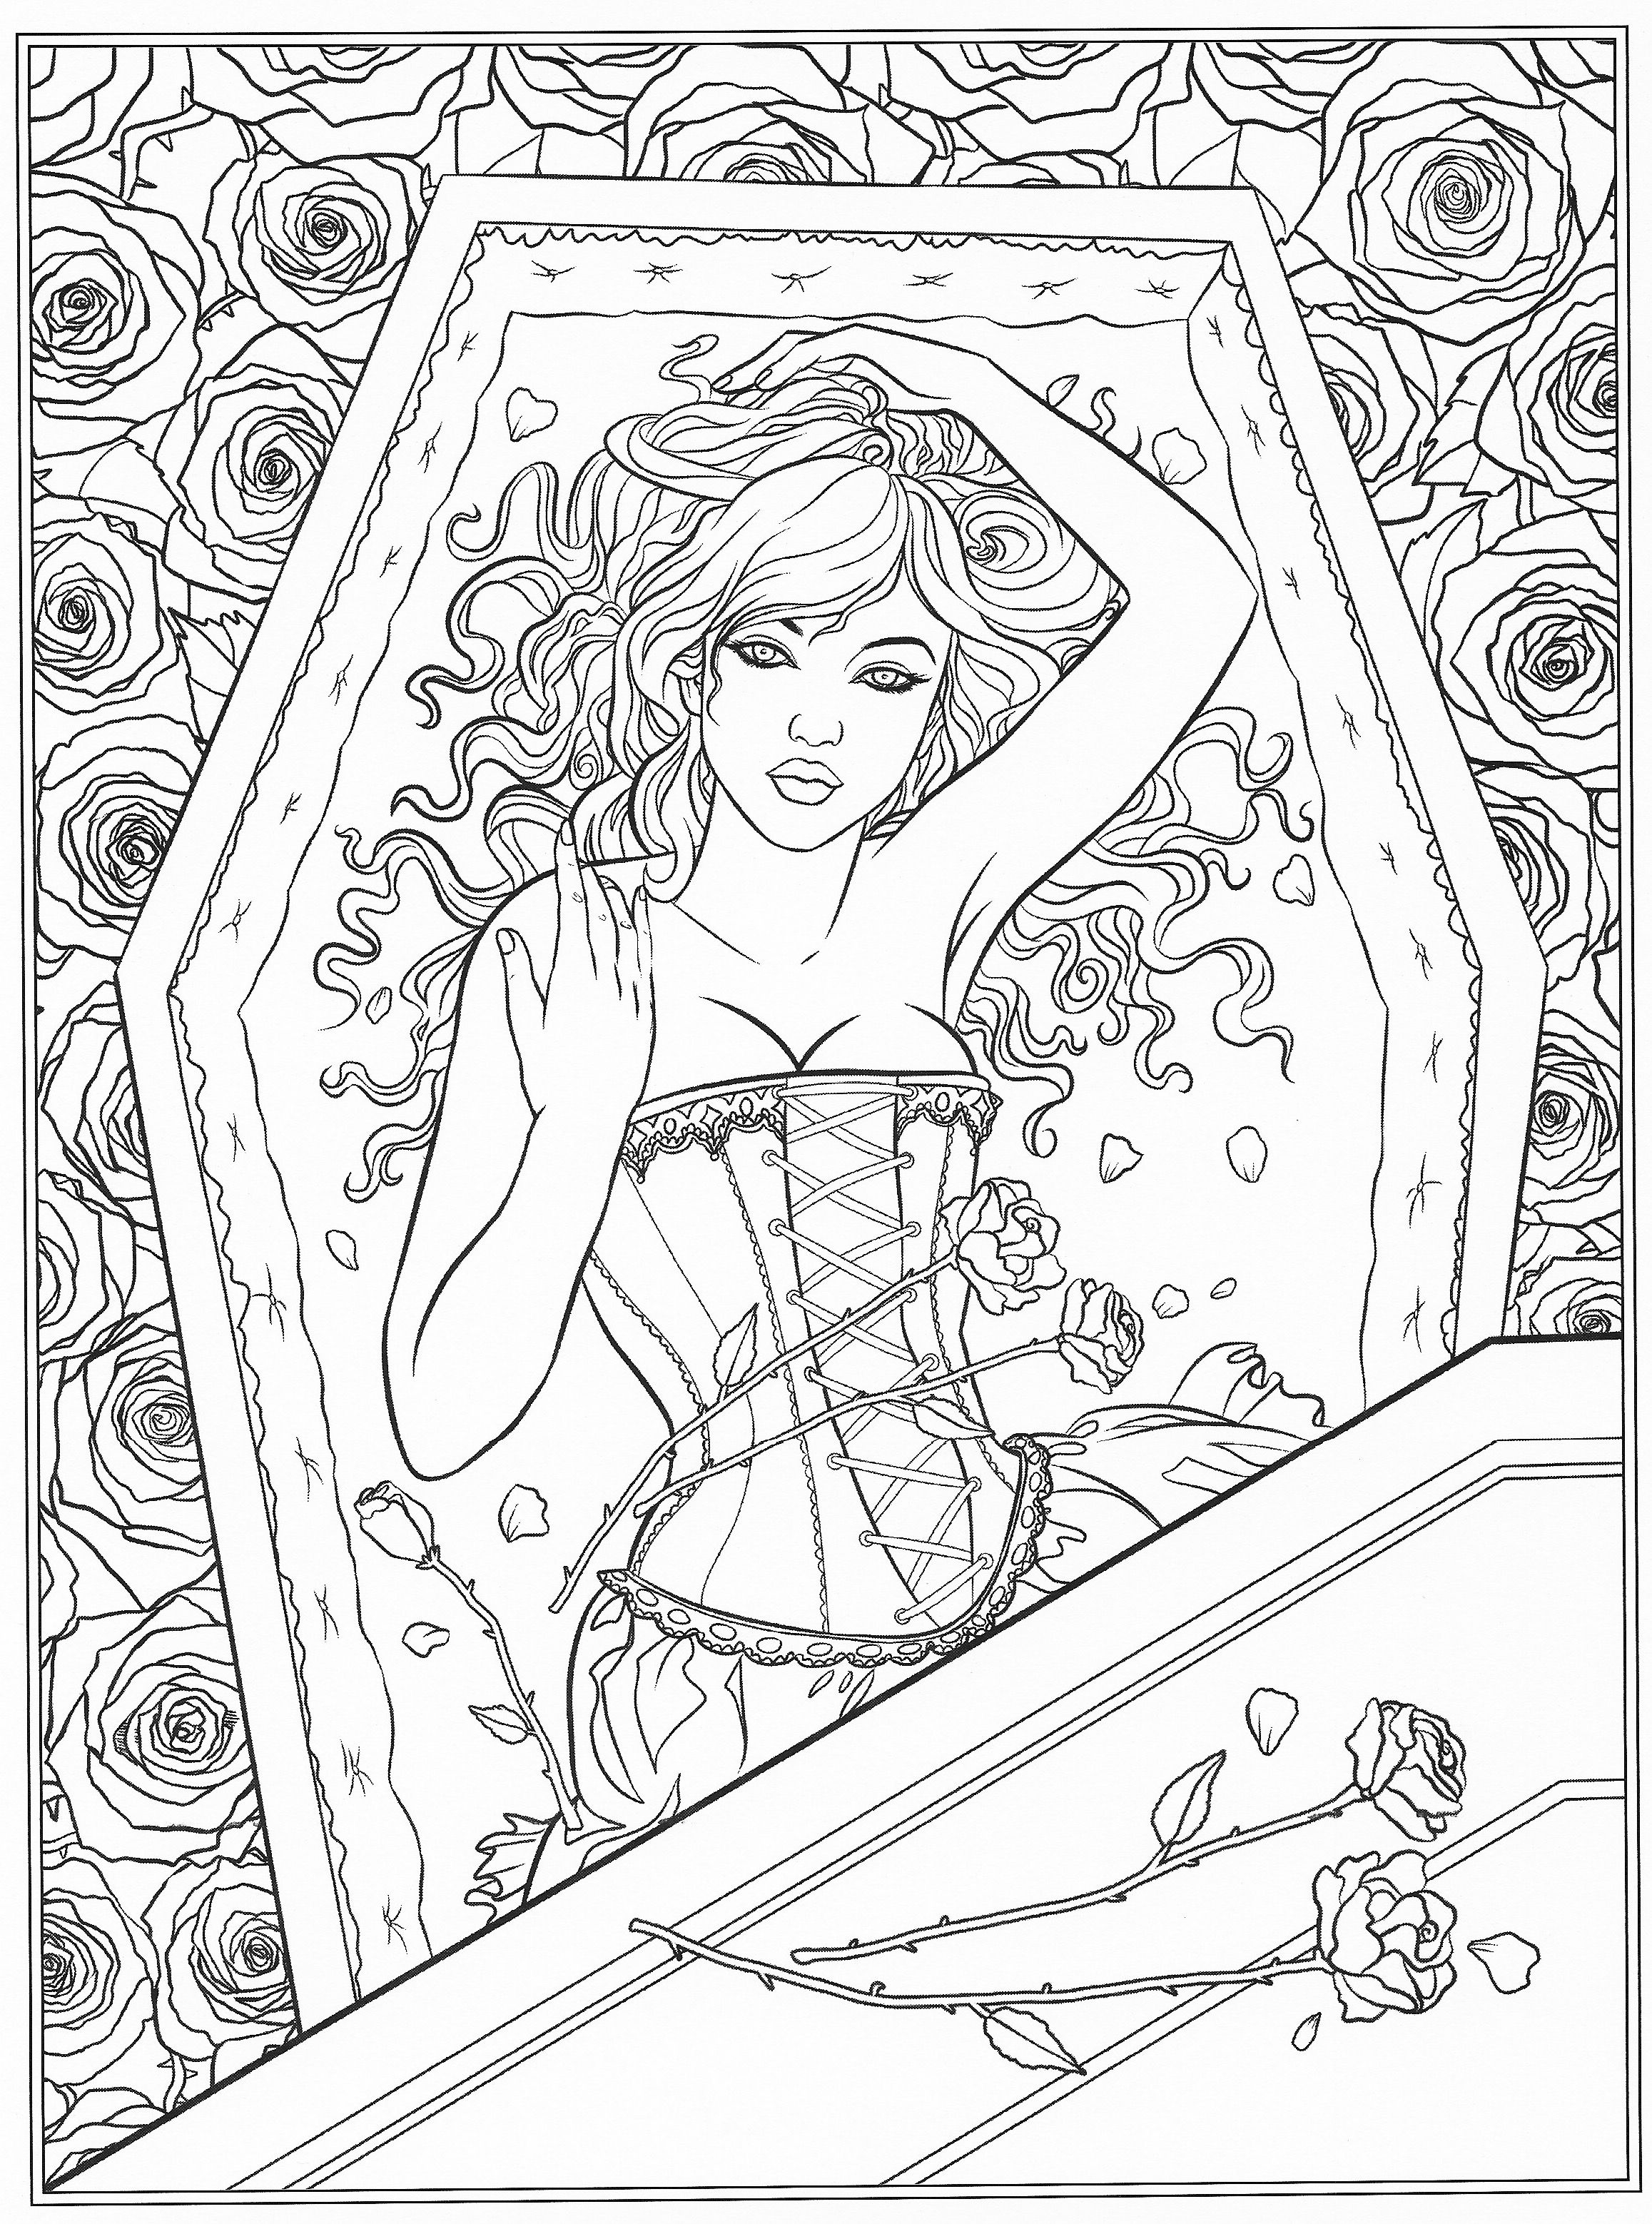 Free Coloring Pages For Adults Pinterest : Gothic coloring page Fantasy Coloring Pages for Adults Pinterest Coloring pages, Color and ...